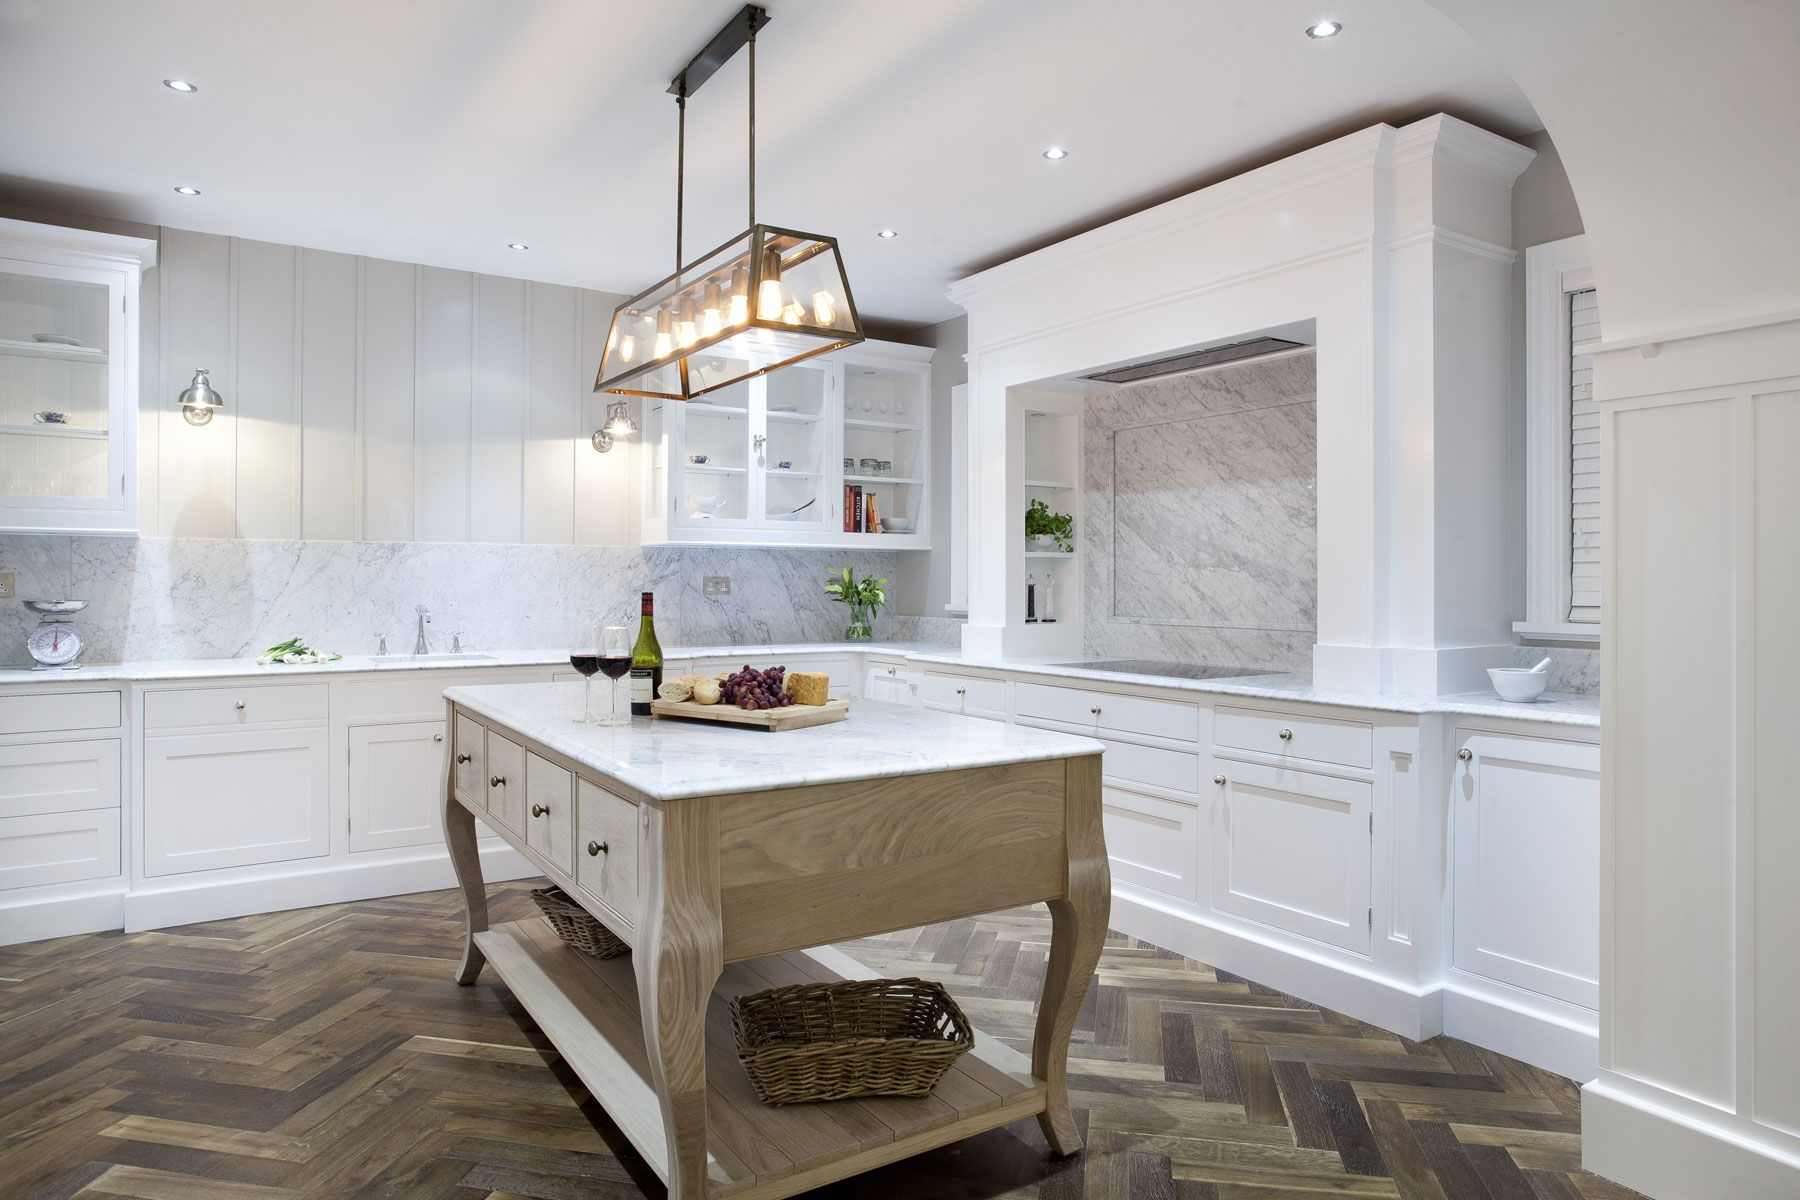 Our new signature range of Luxury kitchens that we proudly call ...